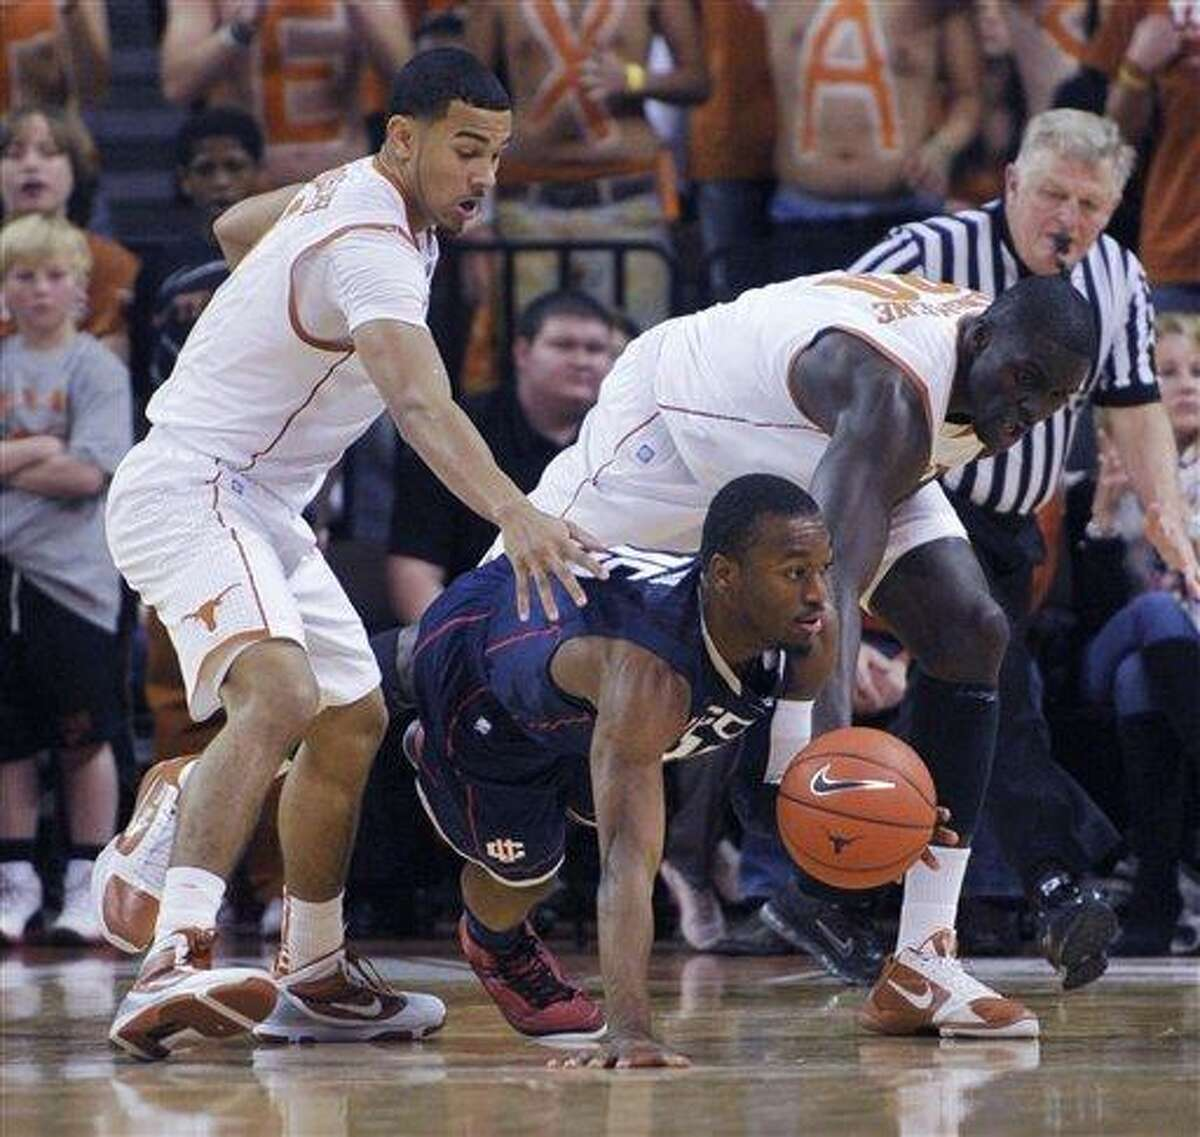 Connecticut guard Kemba Walker, center, goes for the loose ball against Texas guard Cory Joseph, left, and Texas center Alexis Wangmene, right, during the first half in an NCAA college basketball game Saturday, Jan. 8, 2011, in Austin, Texas. (AP Photo/Michael Thomas)